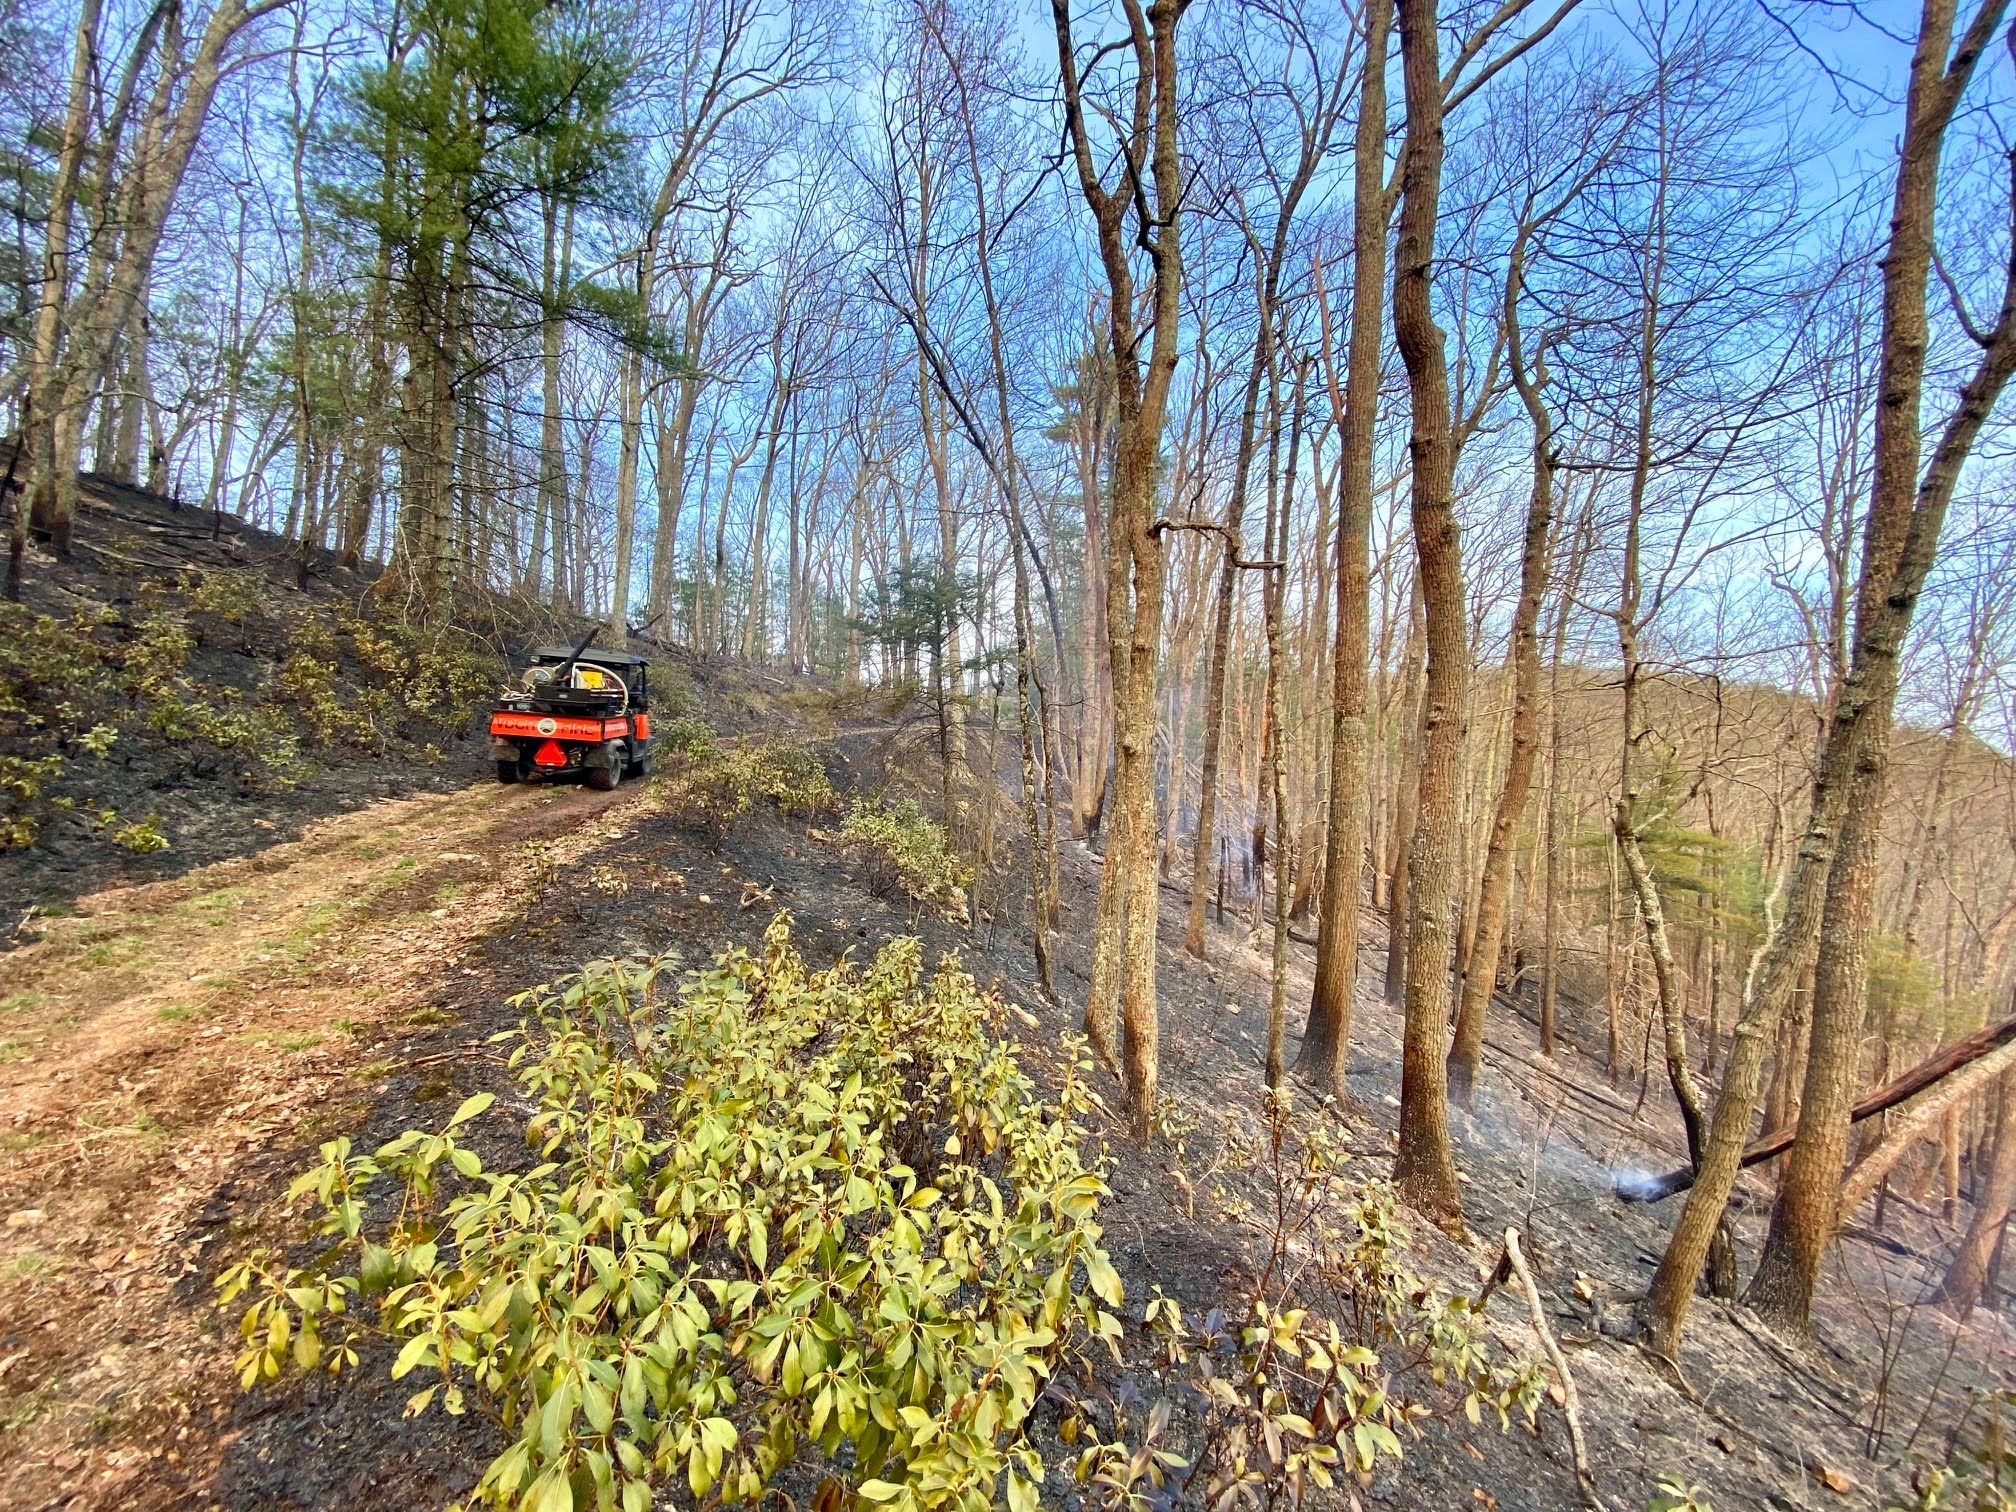 A small red fire engine sit on a wide path cut along the side of a steep slope. The land on either side is darkened by a fire that has moved across the slope. Trees are still standing and unharmed.